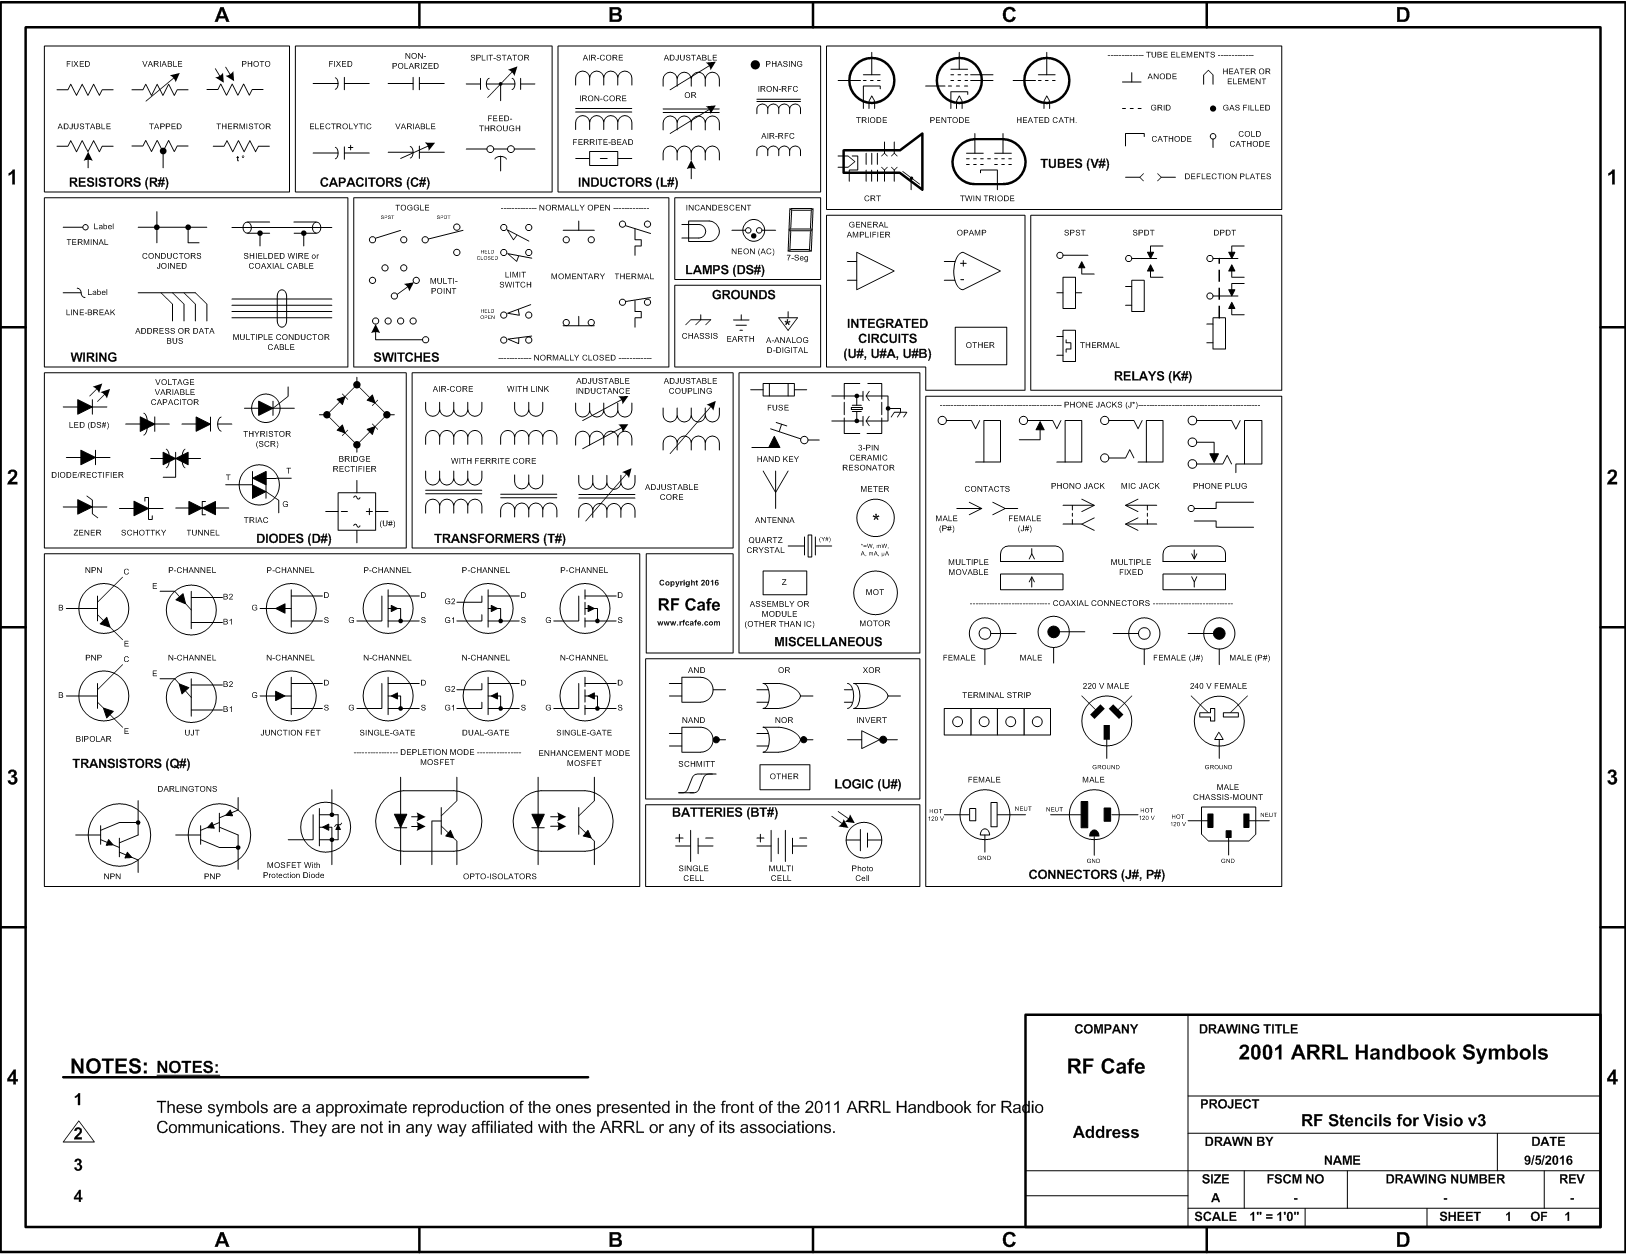 visio circuit schematic symbols from the 2011 arrl handbook rf cafe - Download Visio Templates